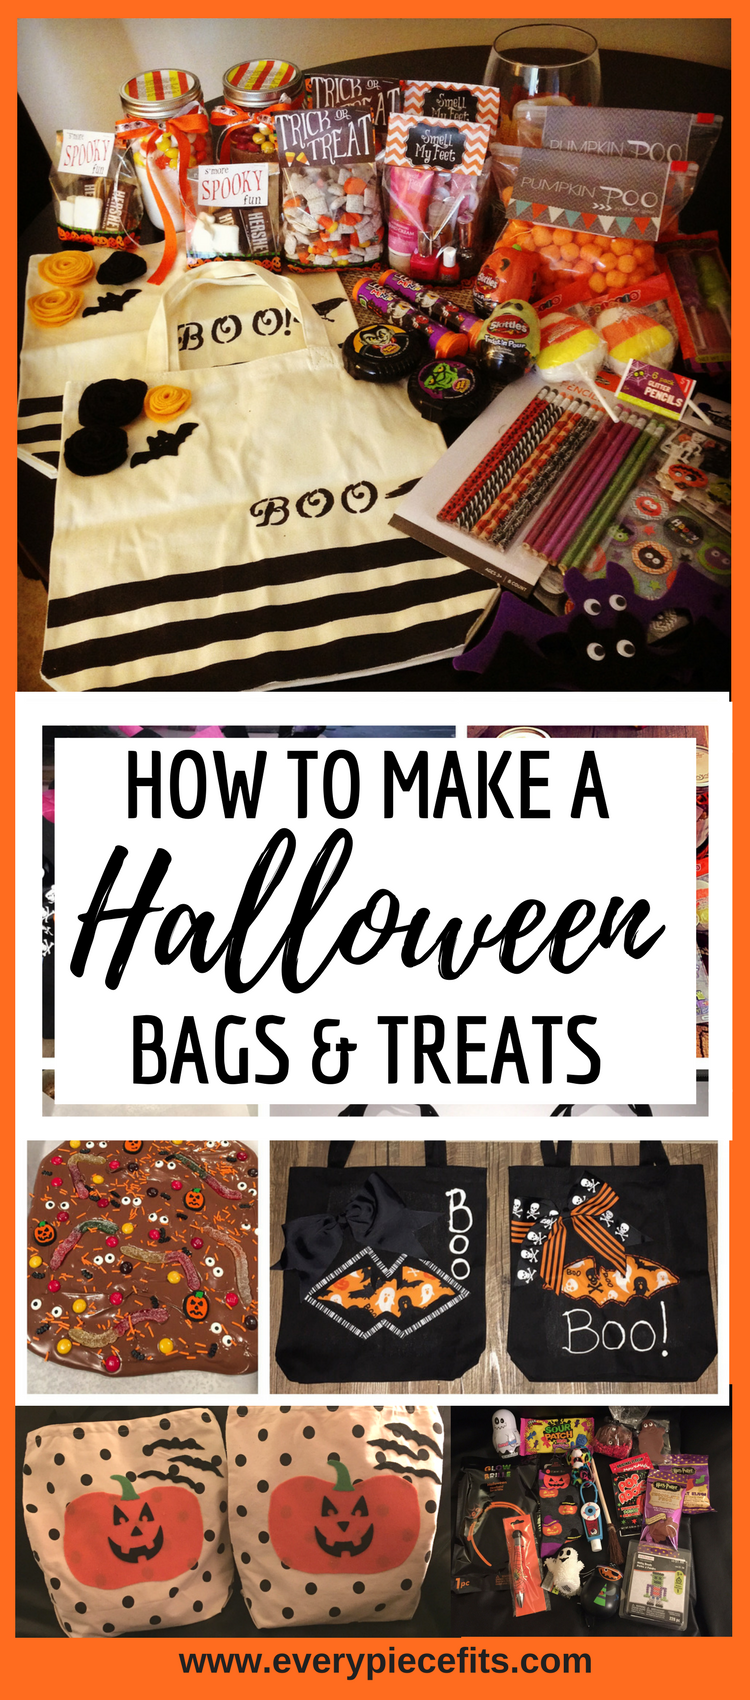 Pinterest How to Make a Halloween Trick or Treat Bags and Treats.png